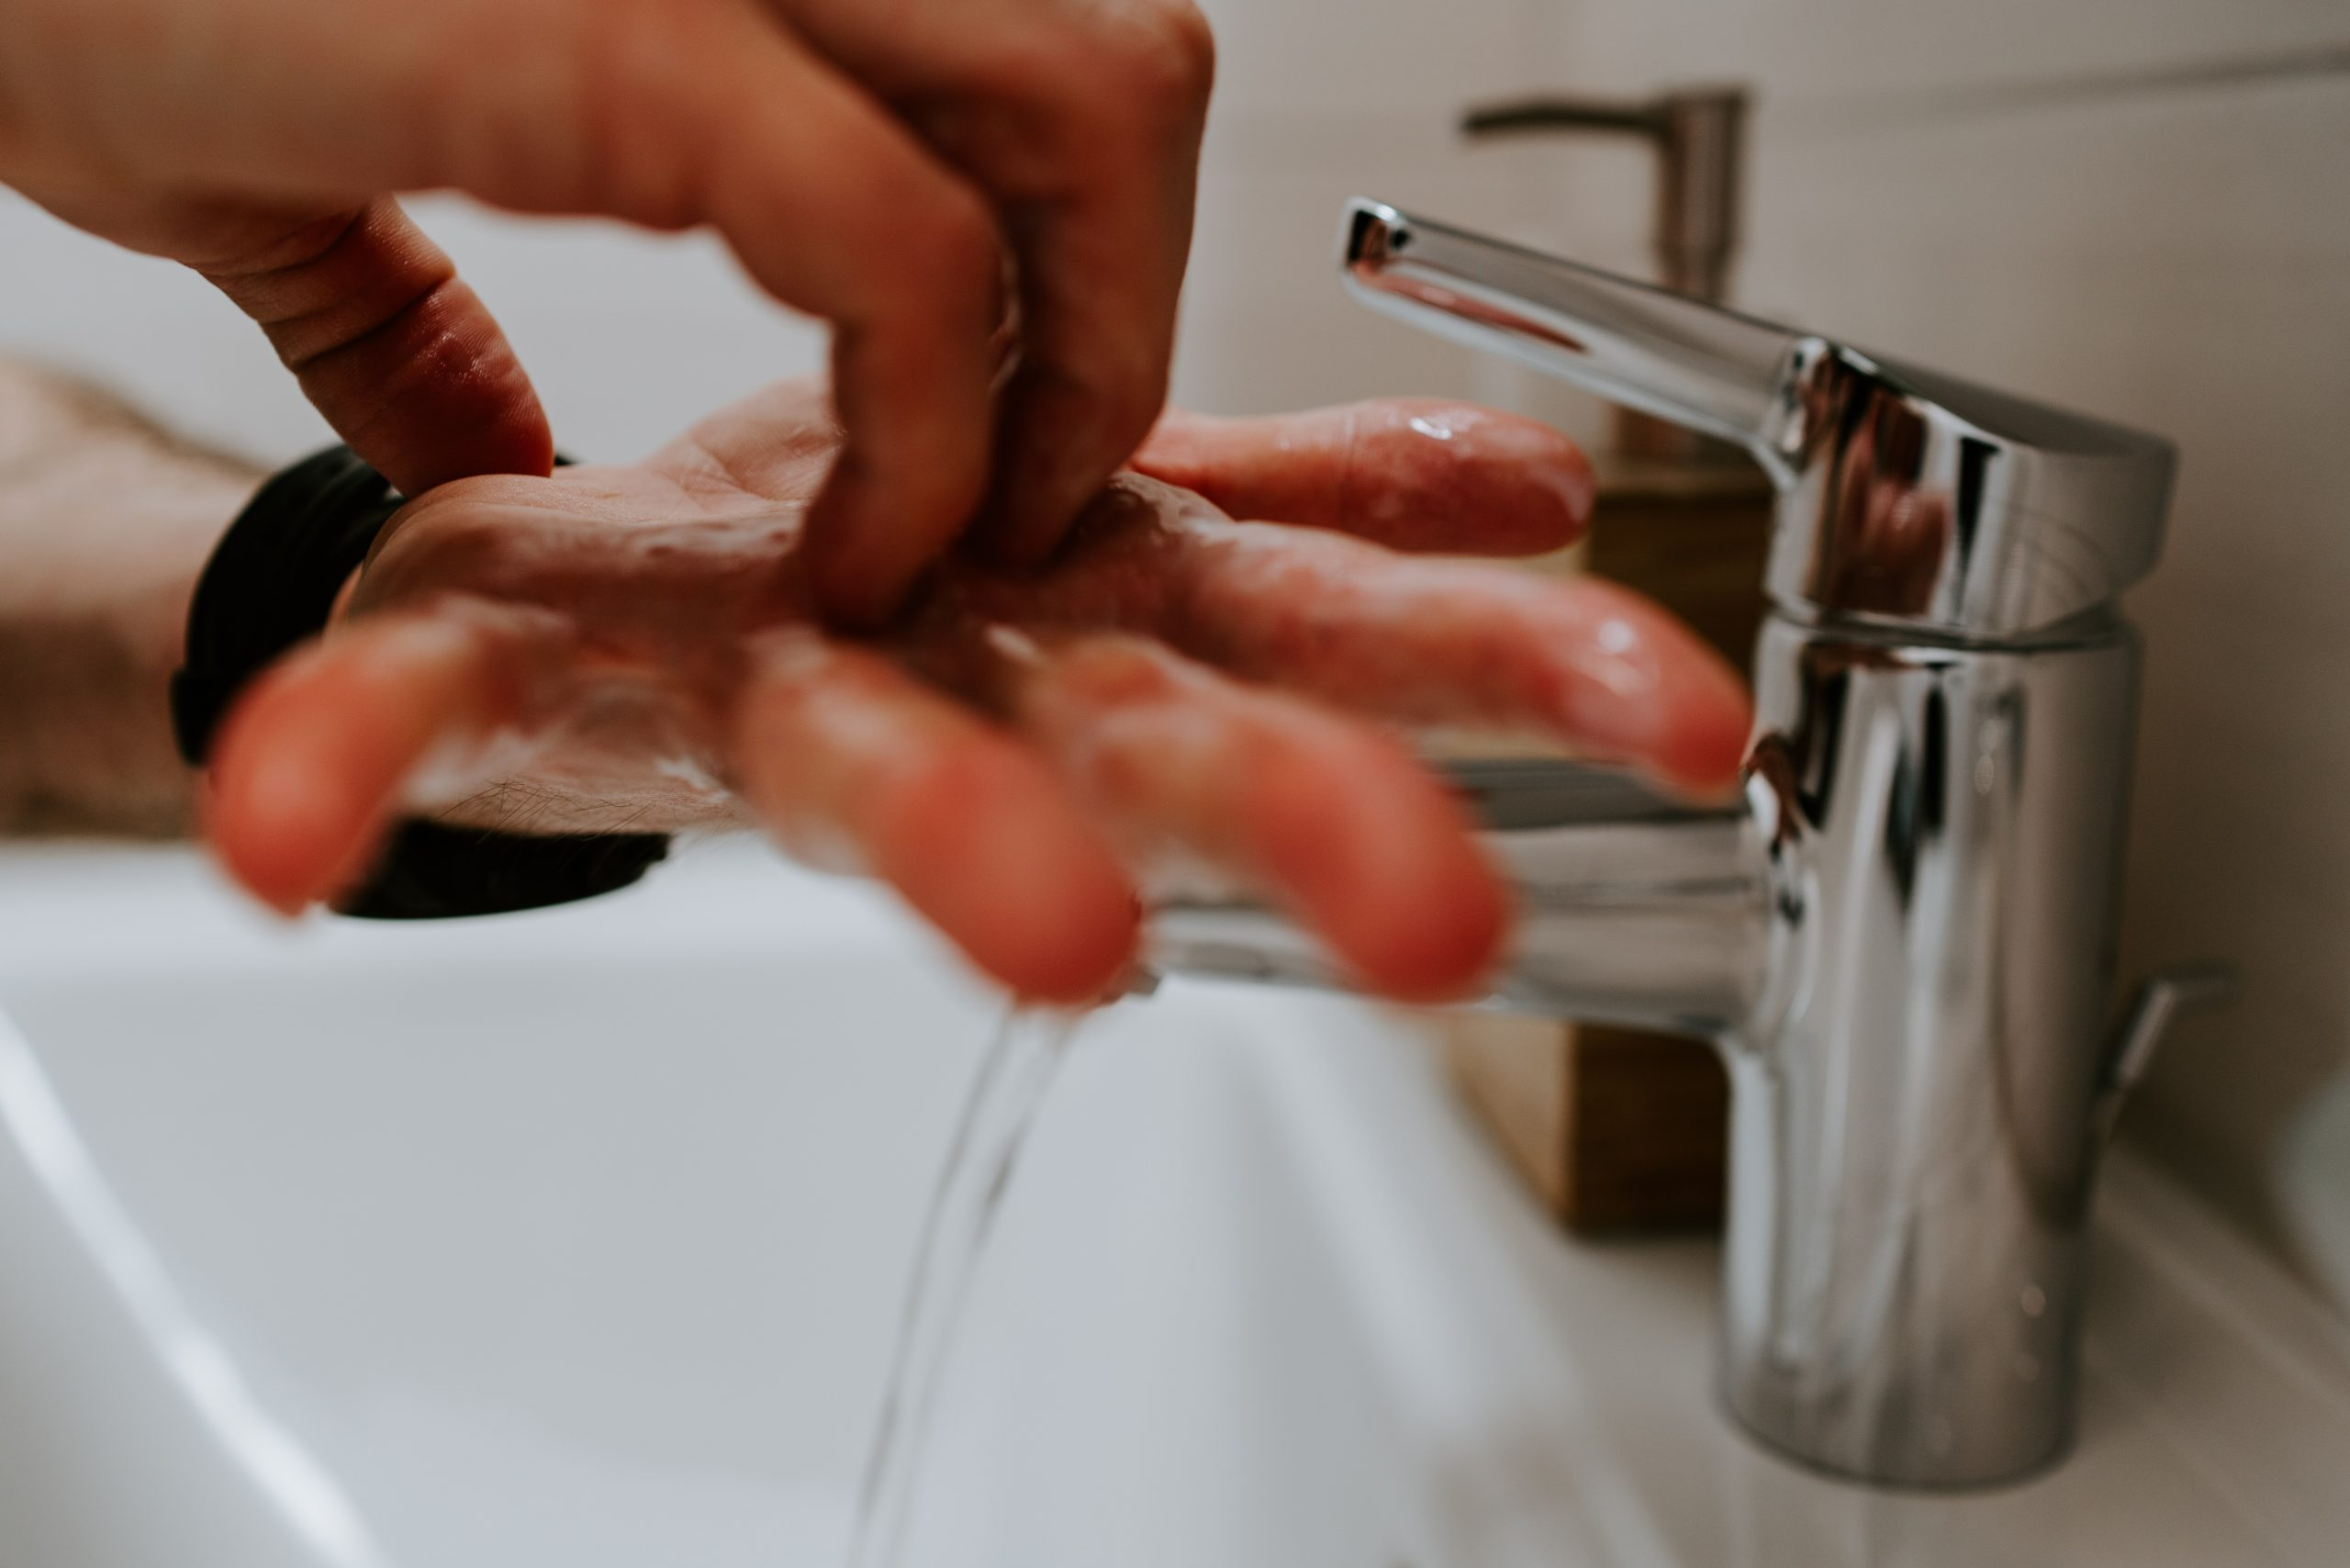 hand washing under faucet